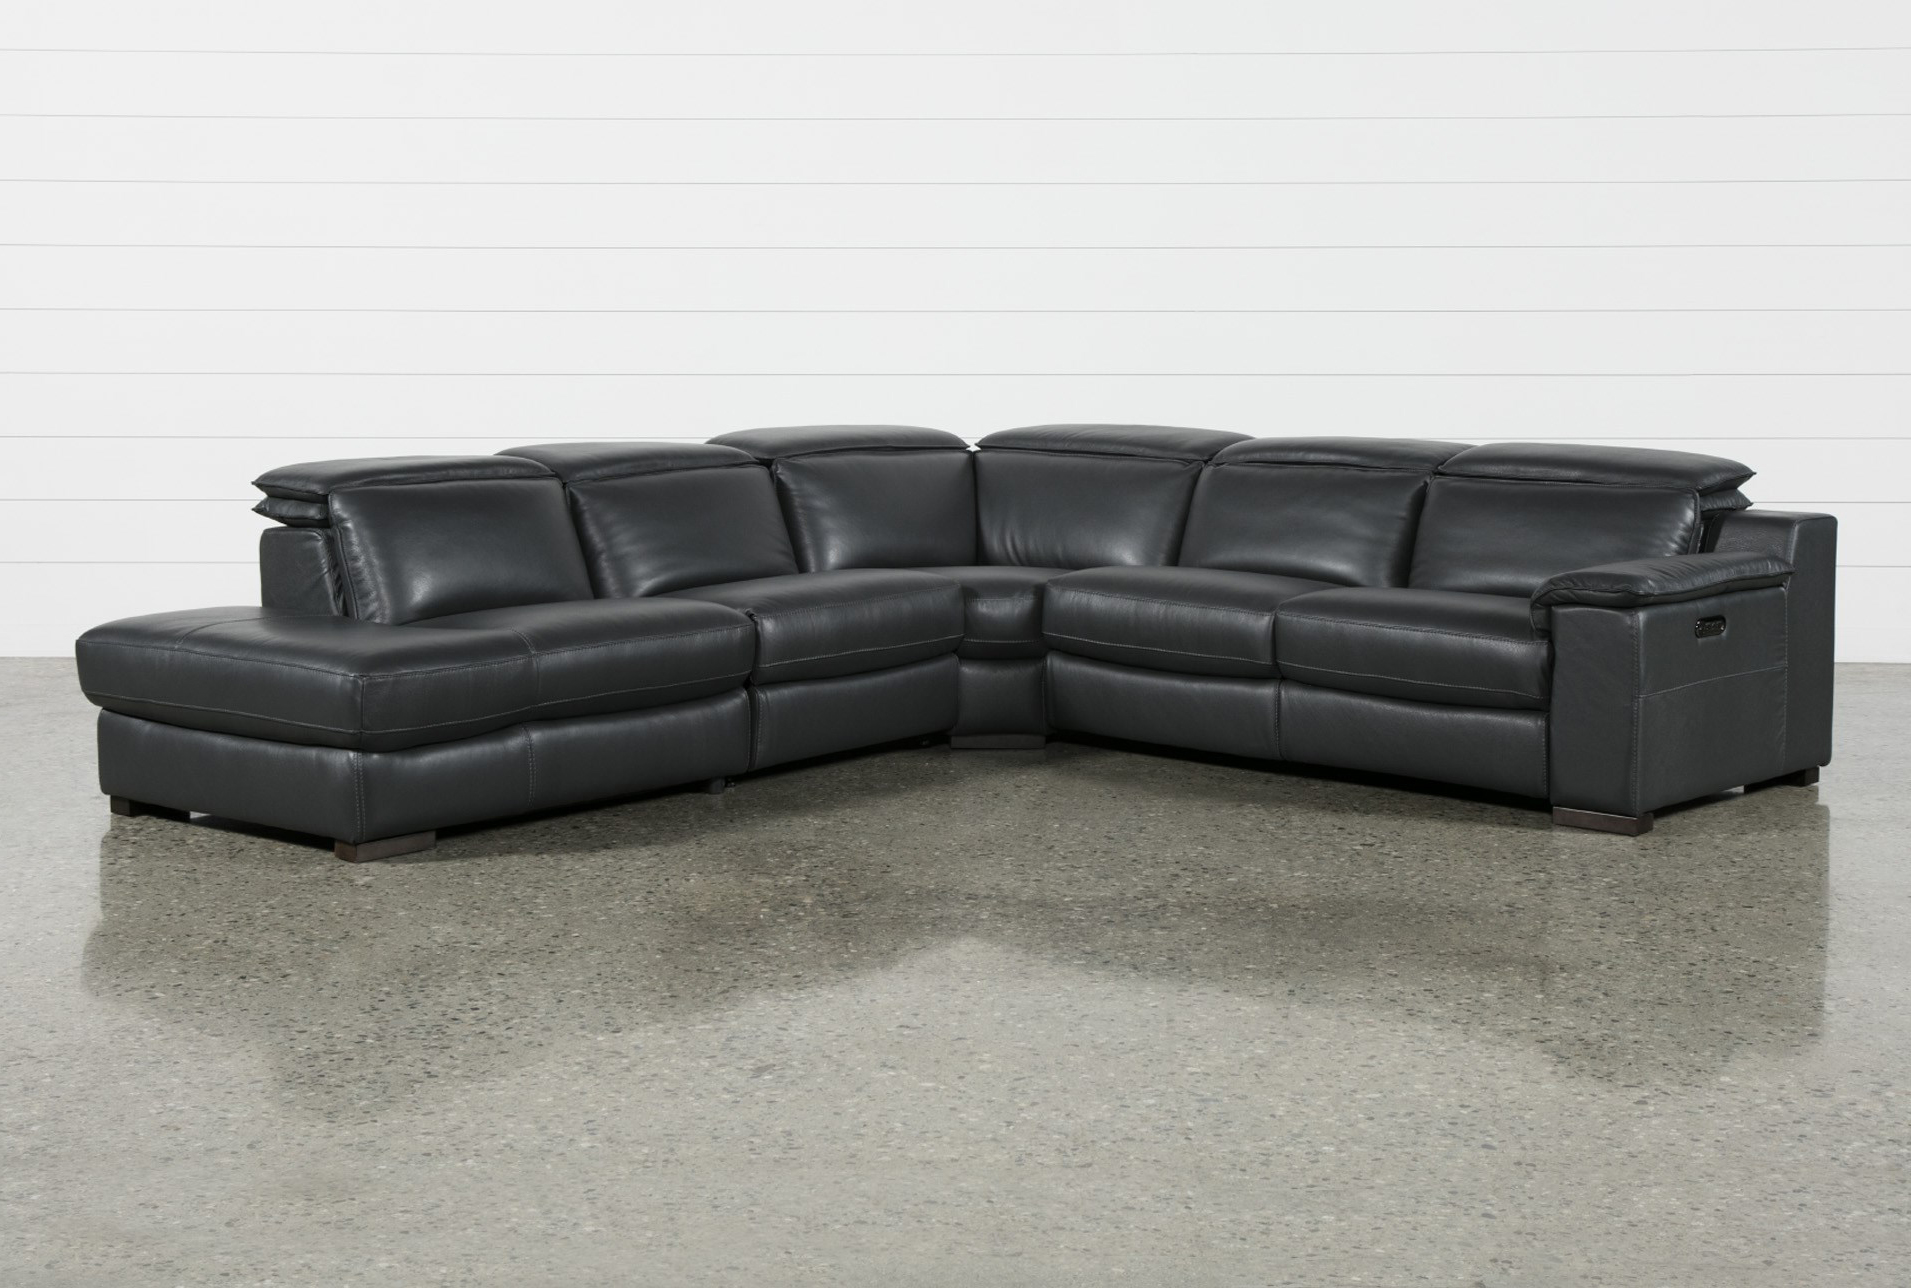 Hana Slate Leather 4 Piece Power Reclining Sectional W/3 Power Recliner & Laf Chaise